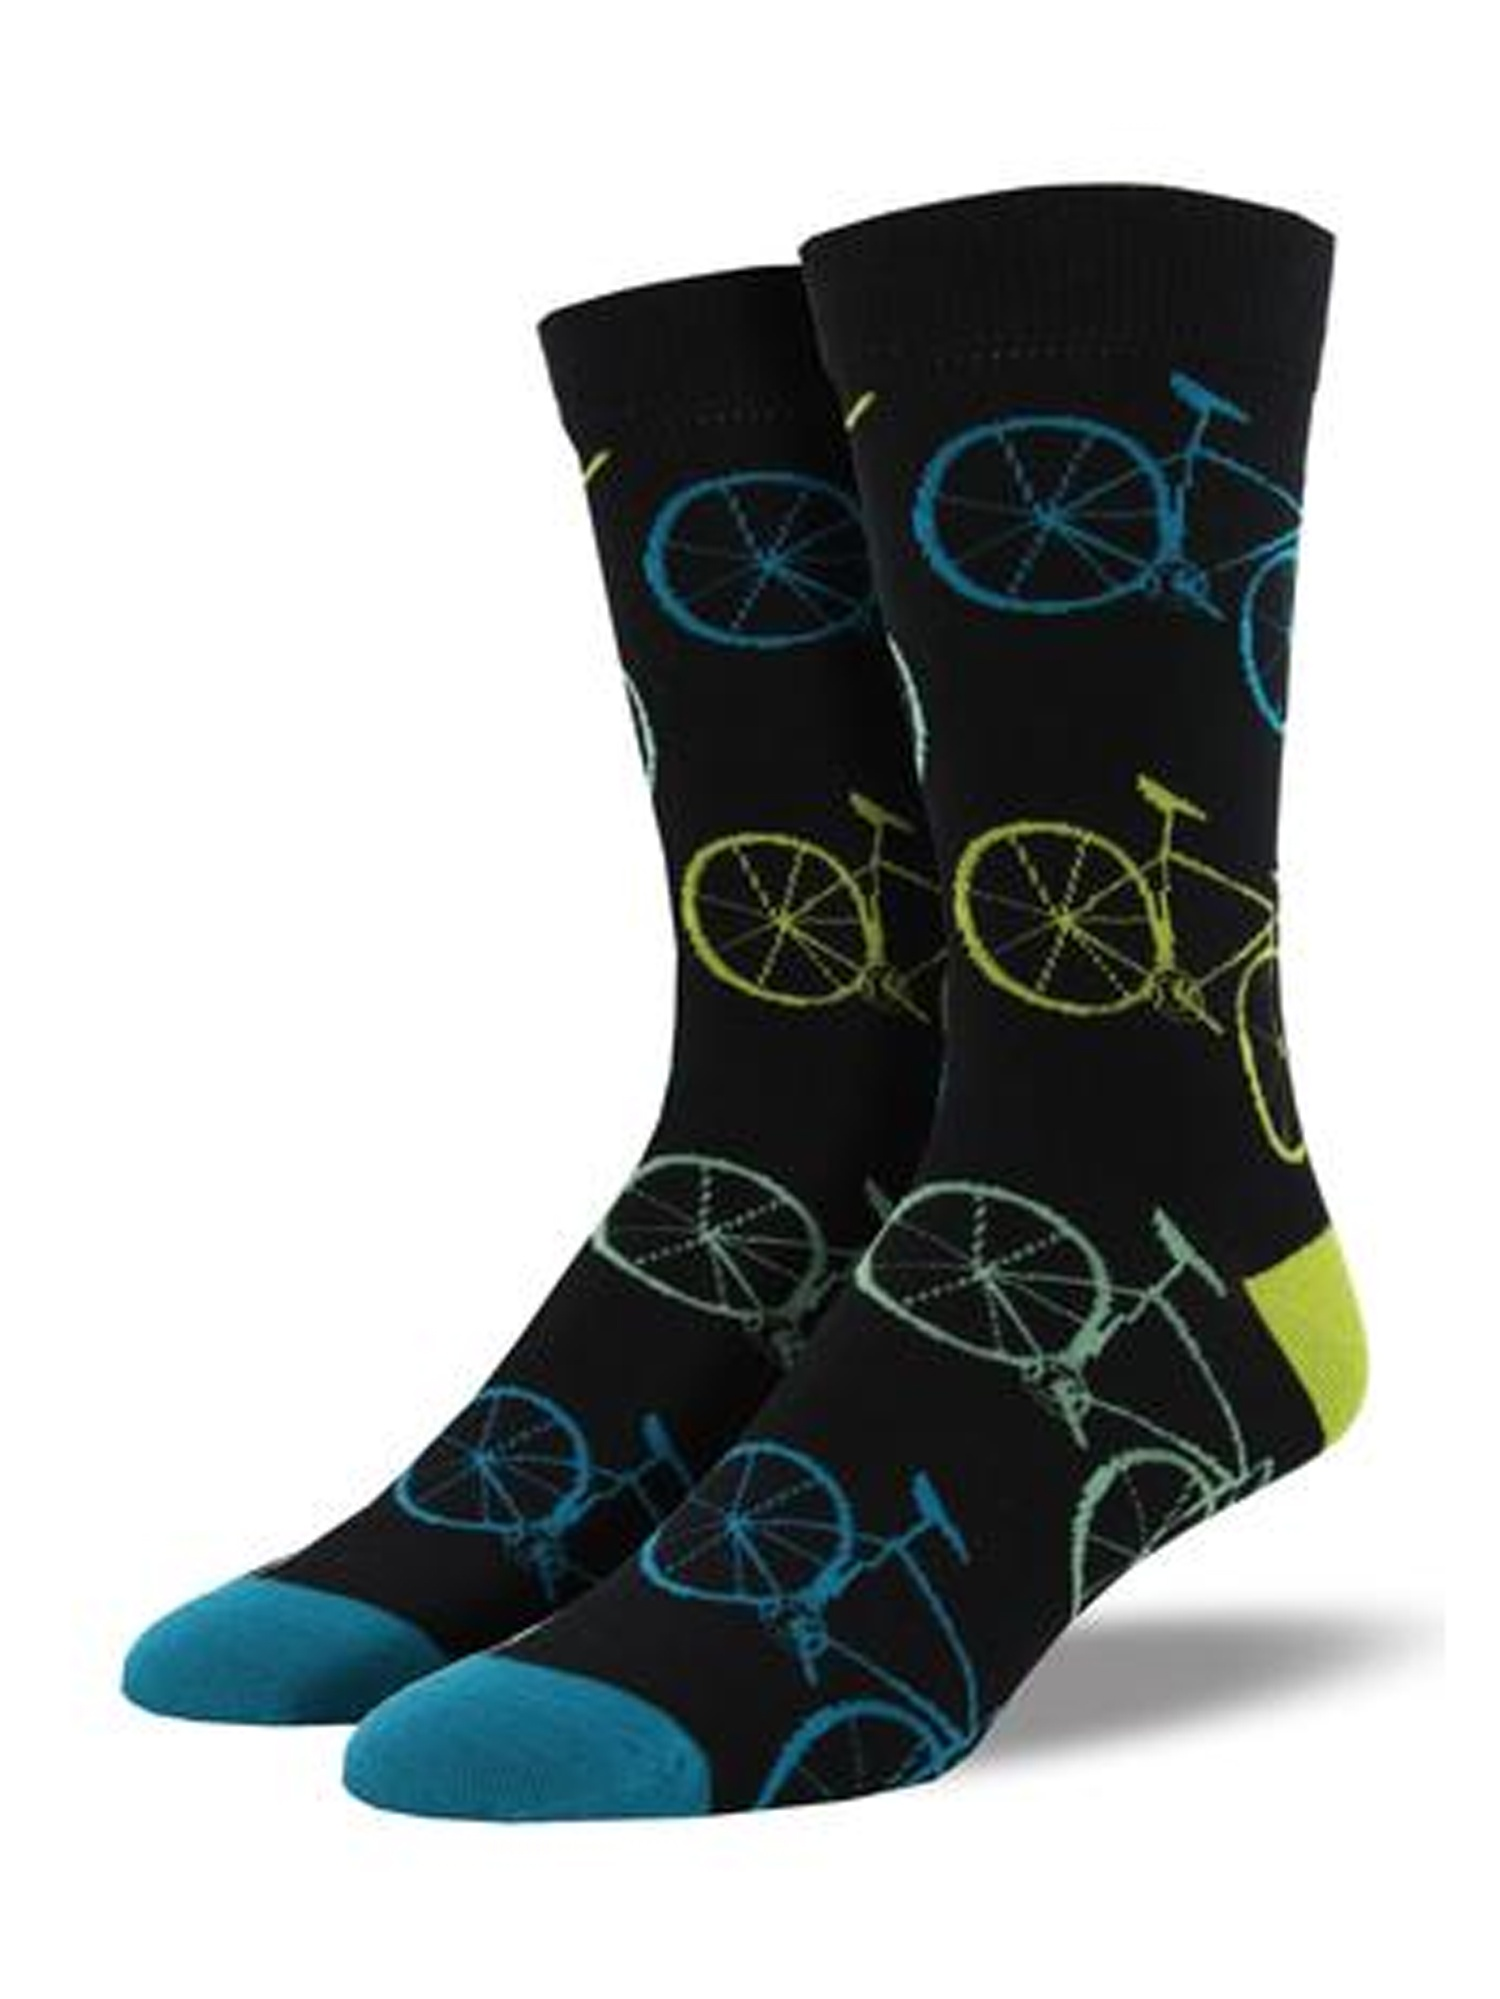 Novelty Socks FIXIE BLACK Fabric Bamboo Crew Bicycle Mbn853 Blk